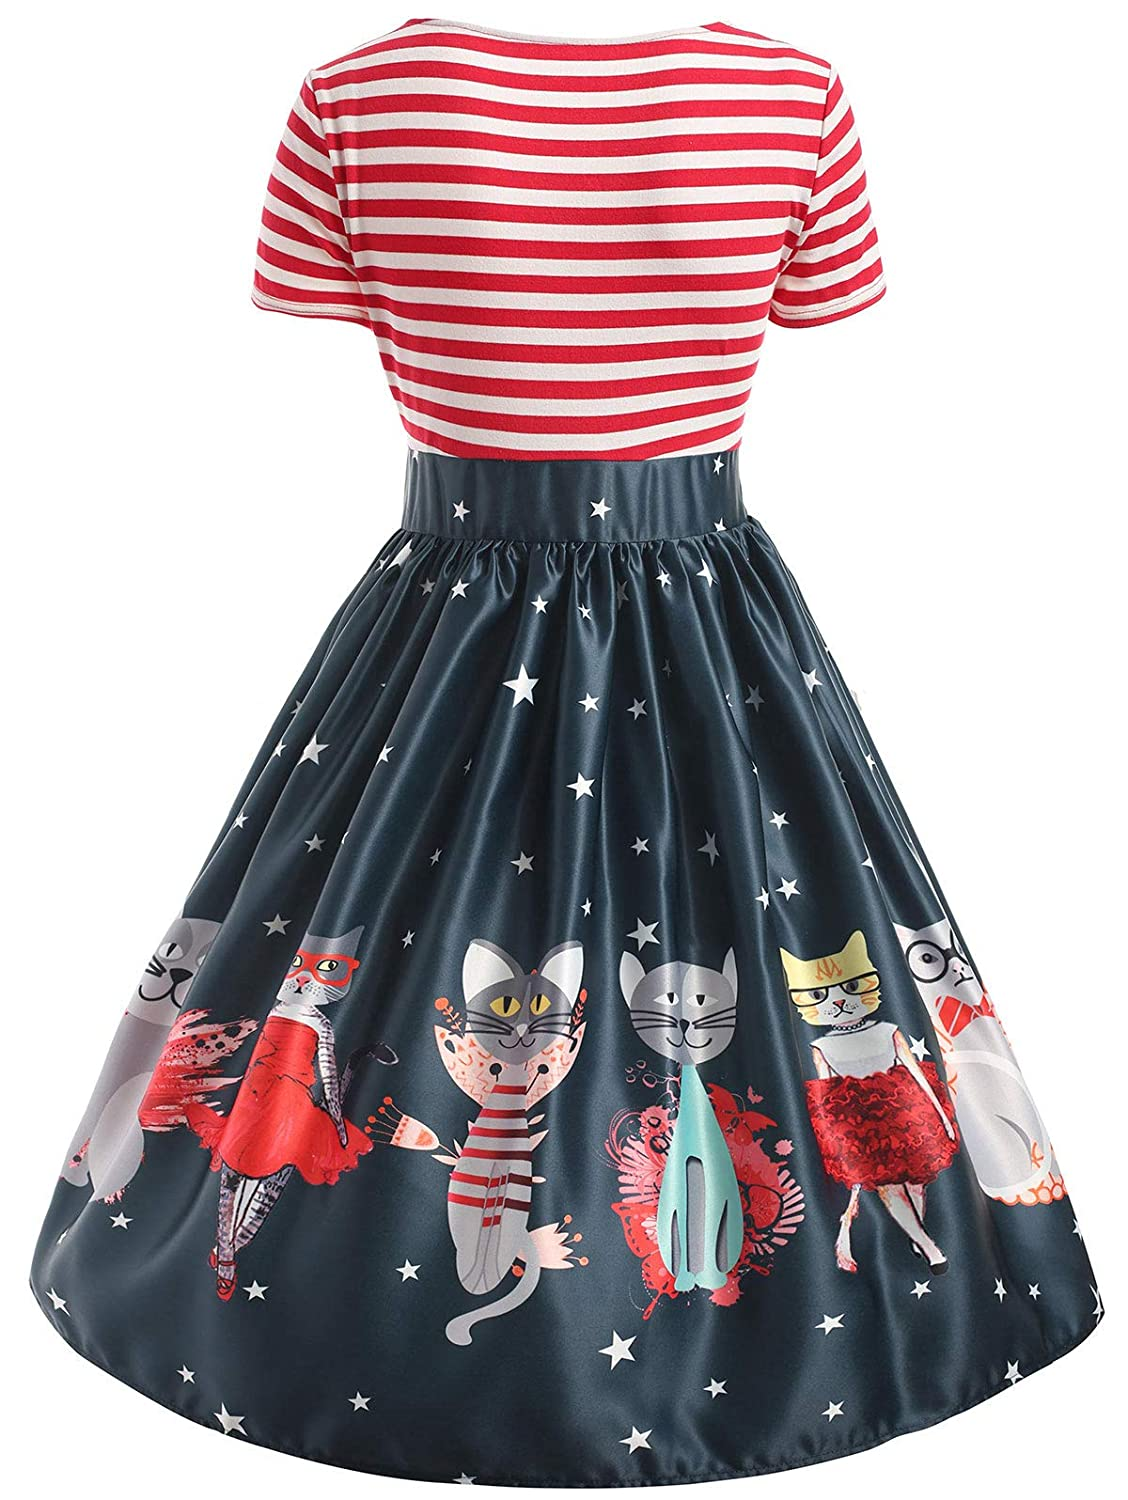 59d78b2a7a69 BeautyGal Women's Plus Size Striped Cuted Cat Printed Rockabilly Swing Tee Cocktail  Dress Christmas Costumes